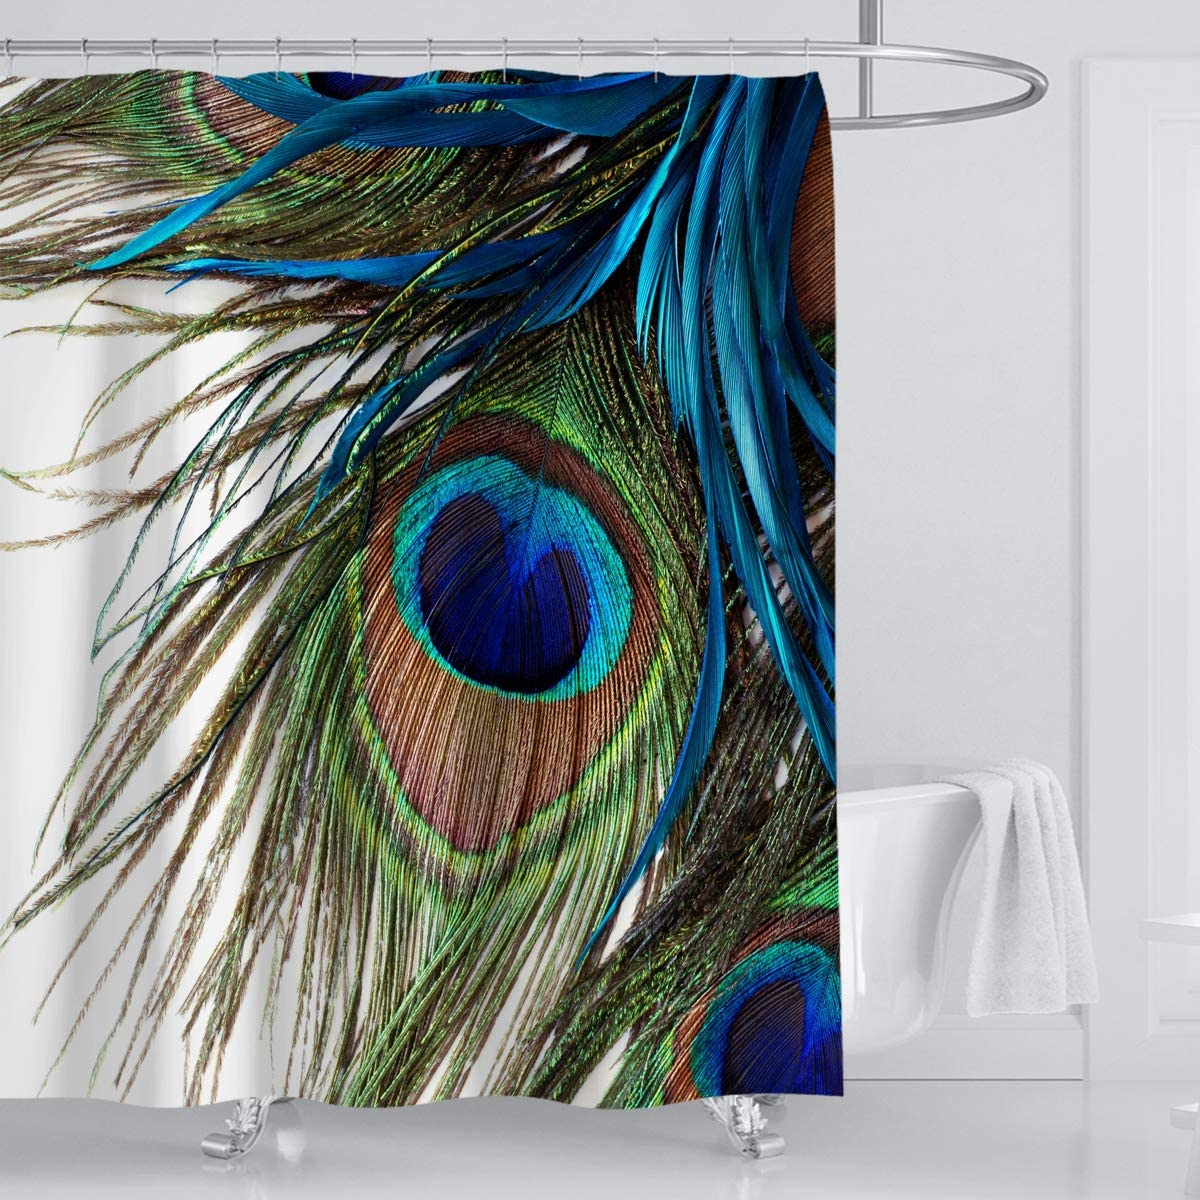 Whim-Wham Vantage Peacock Feathers Shower Curtain Blue Green Delicate Home Decor Shower Curtain